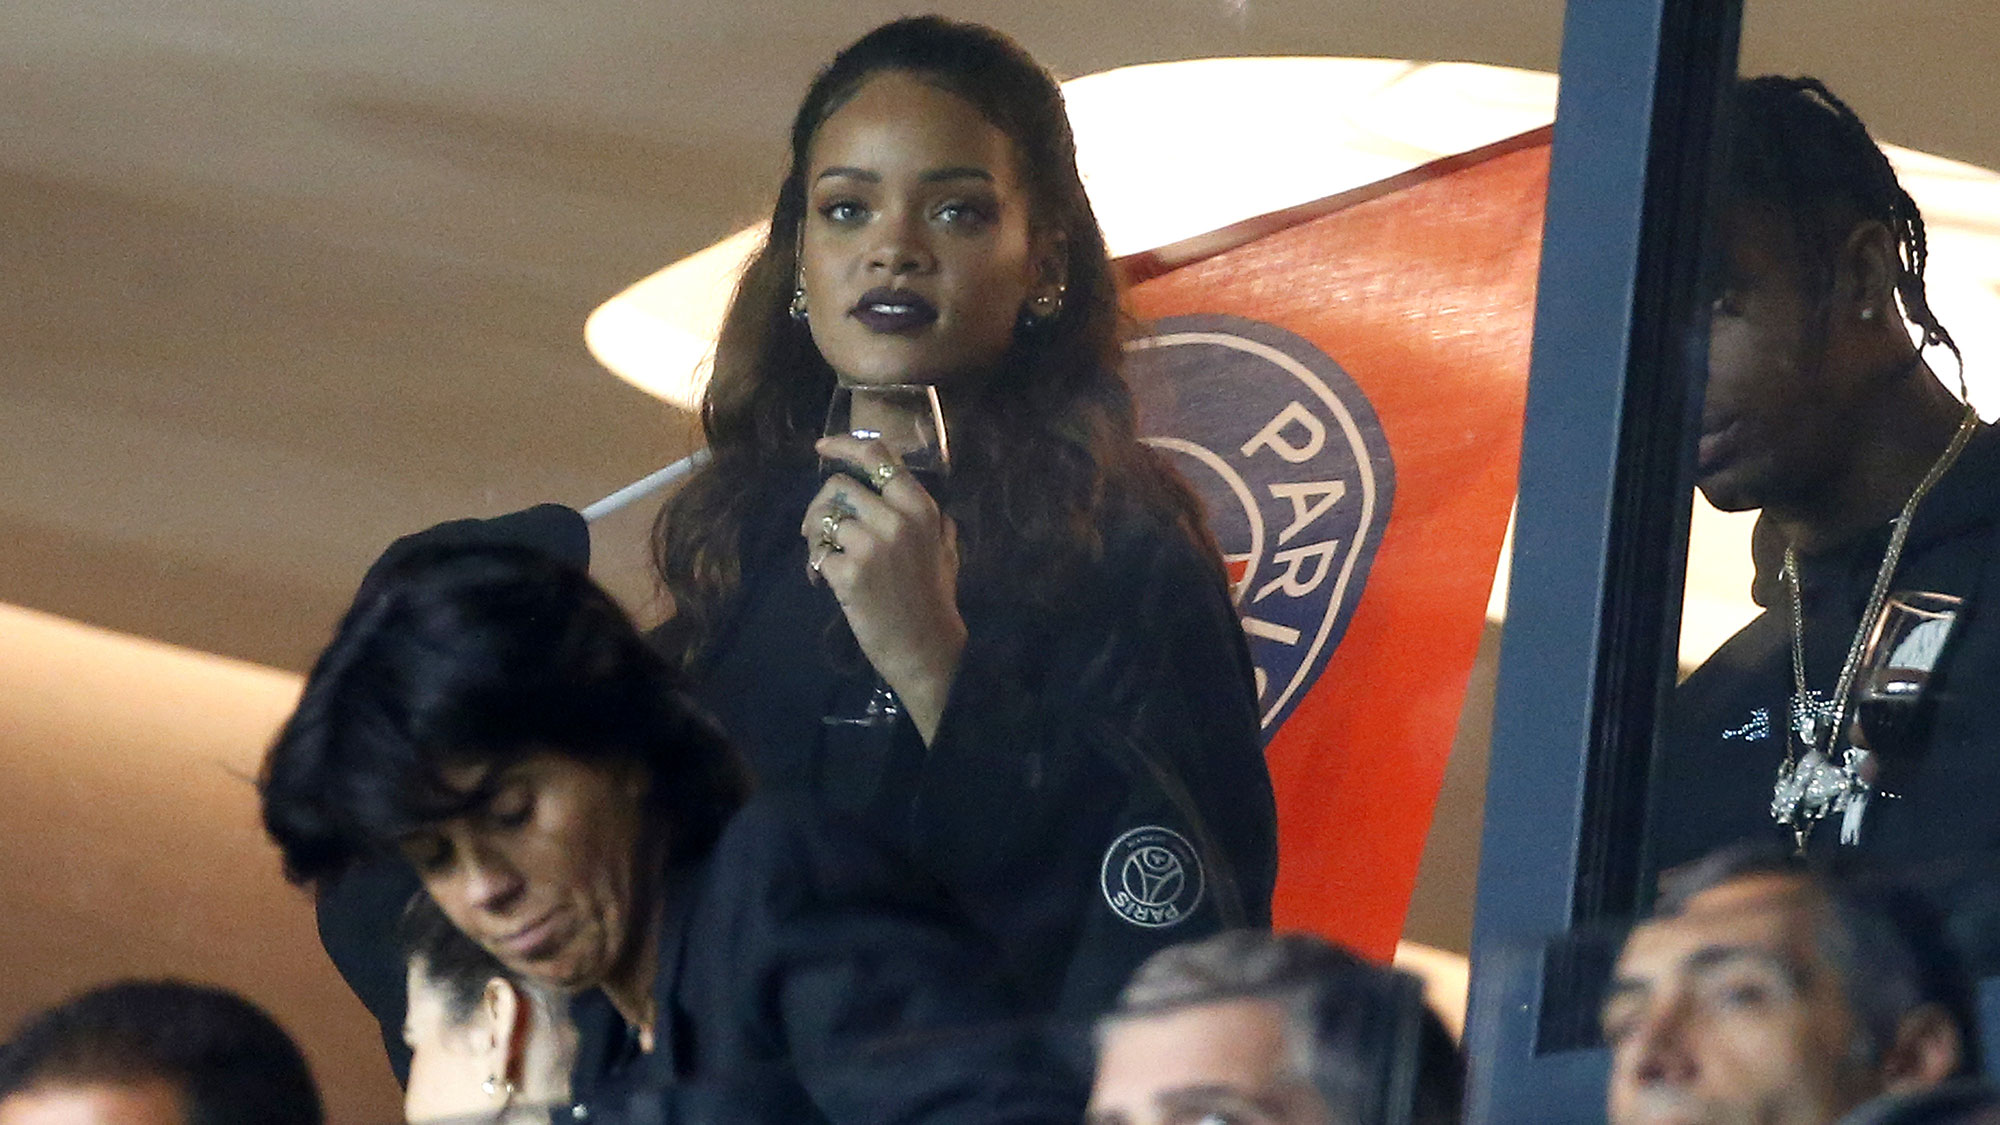 Yes, that is Rihanna.